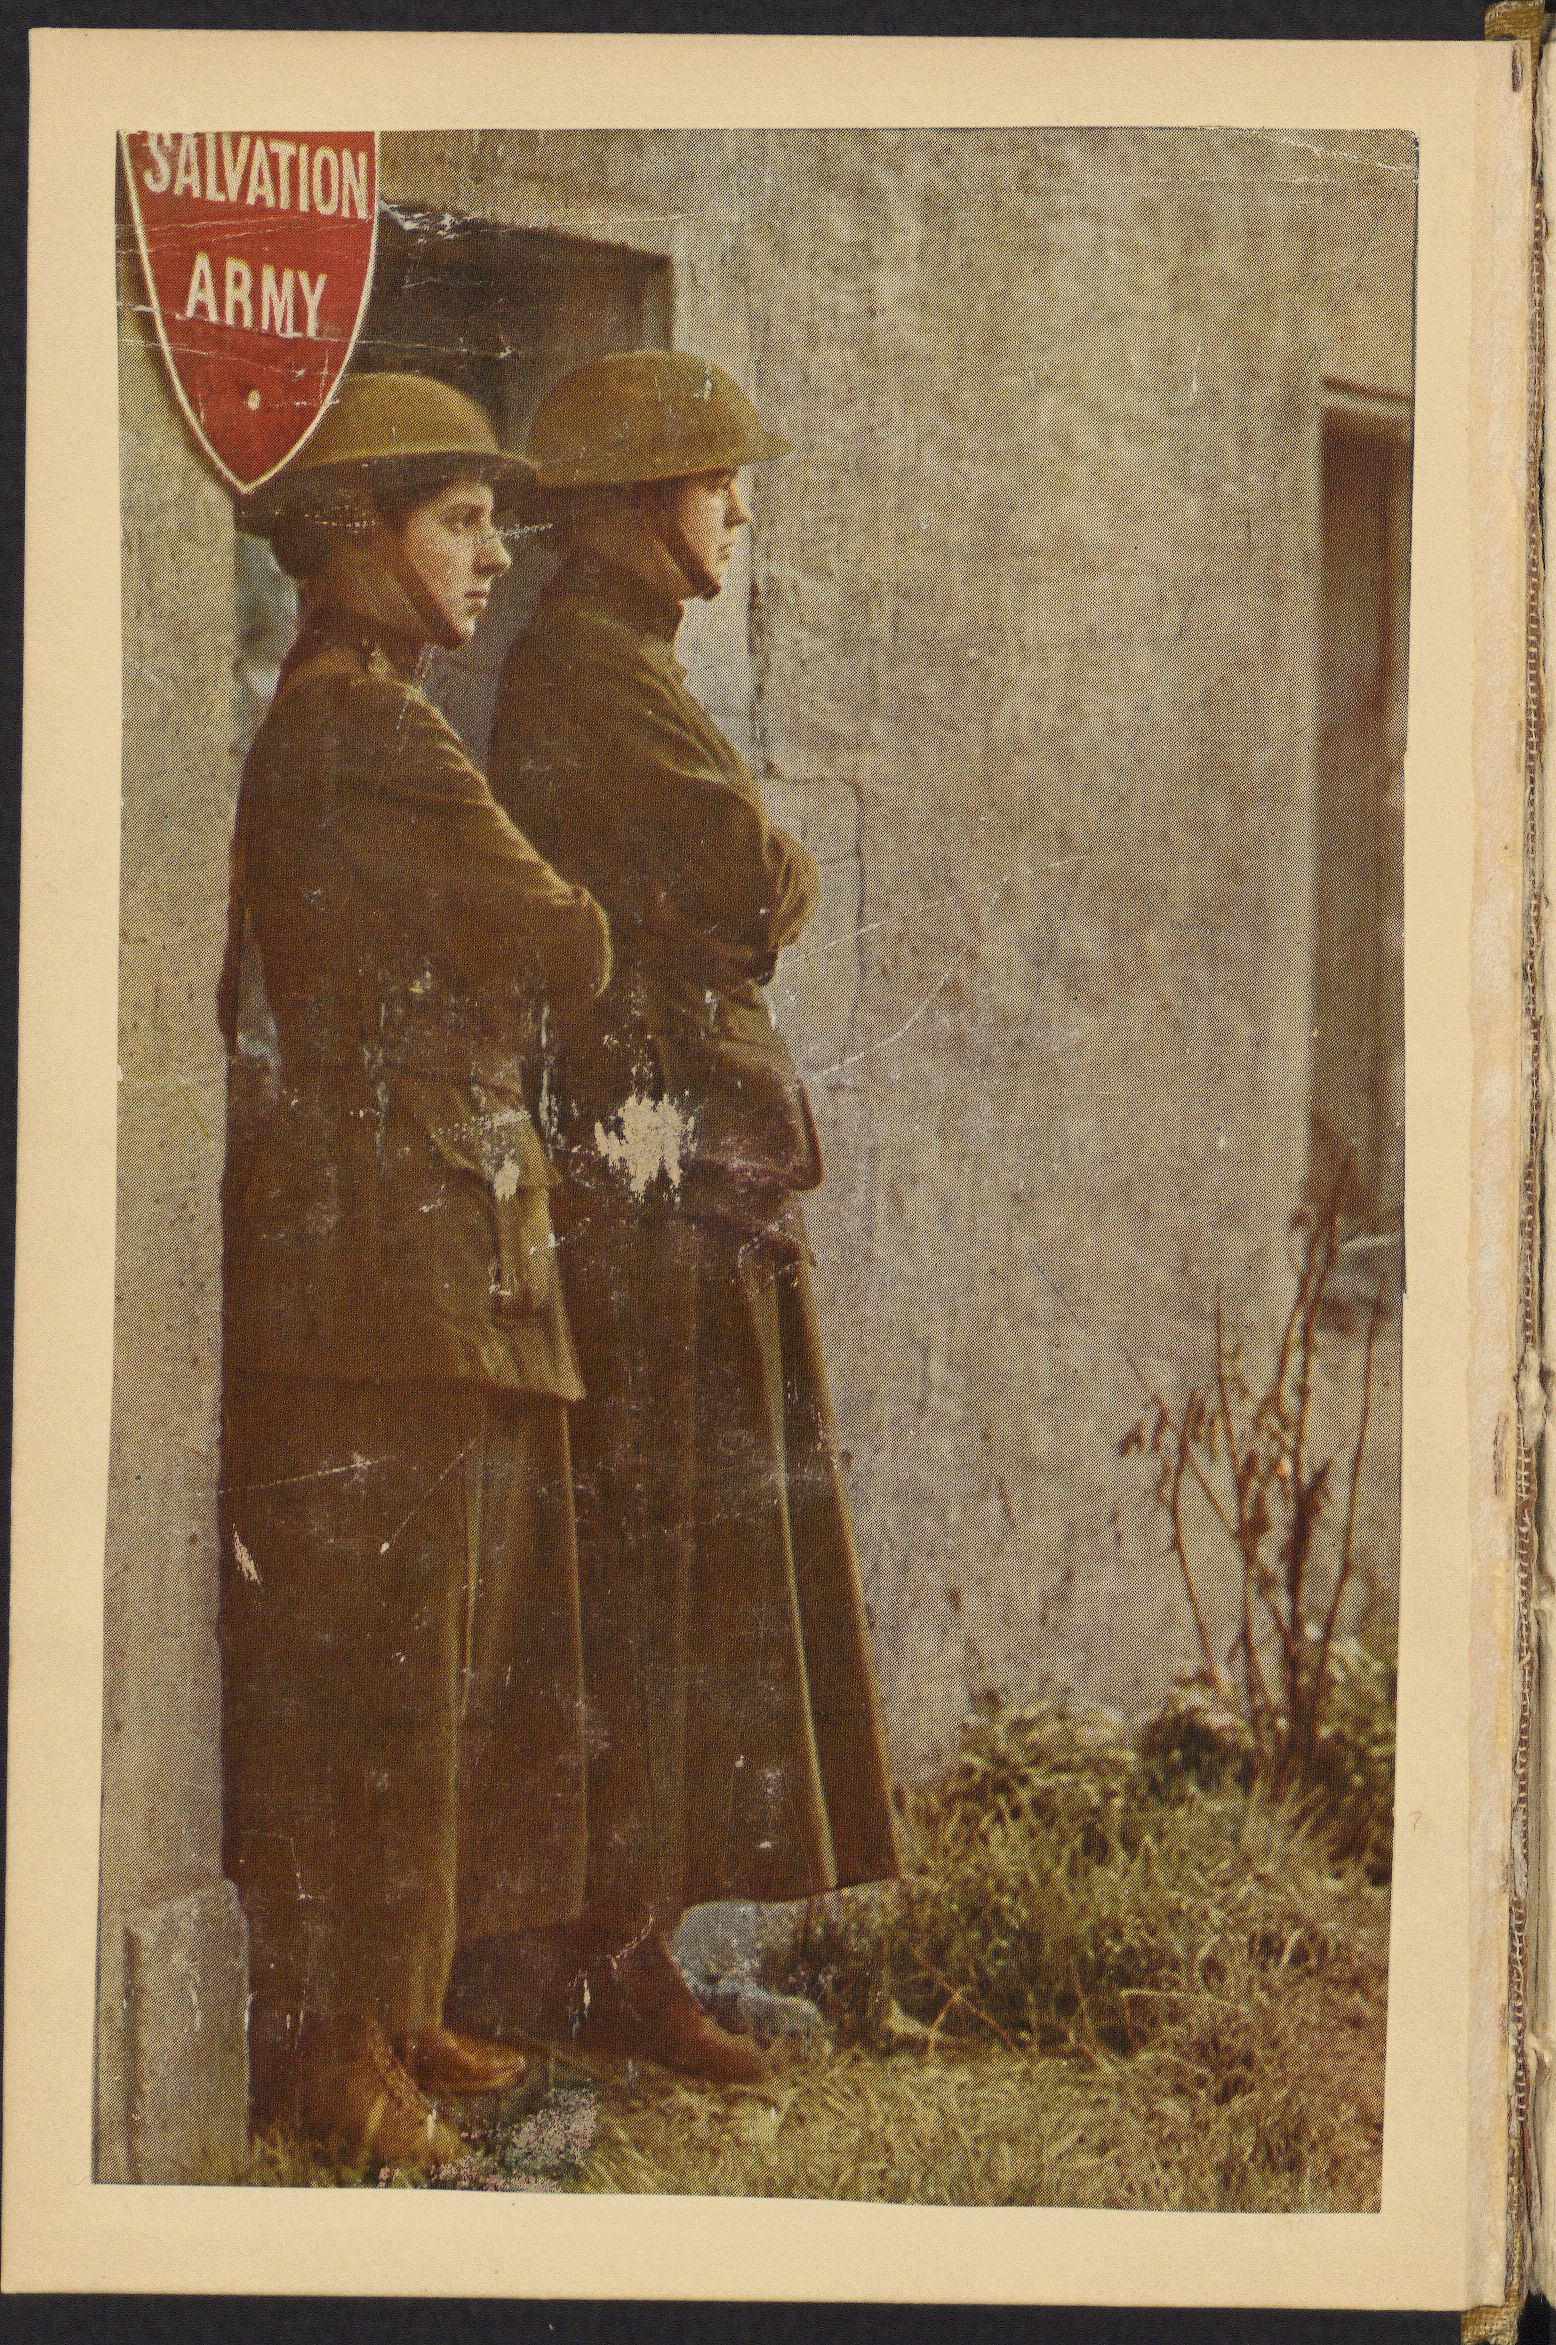 Illustration from 'The War Romance of the Salvation Army', 1919